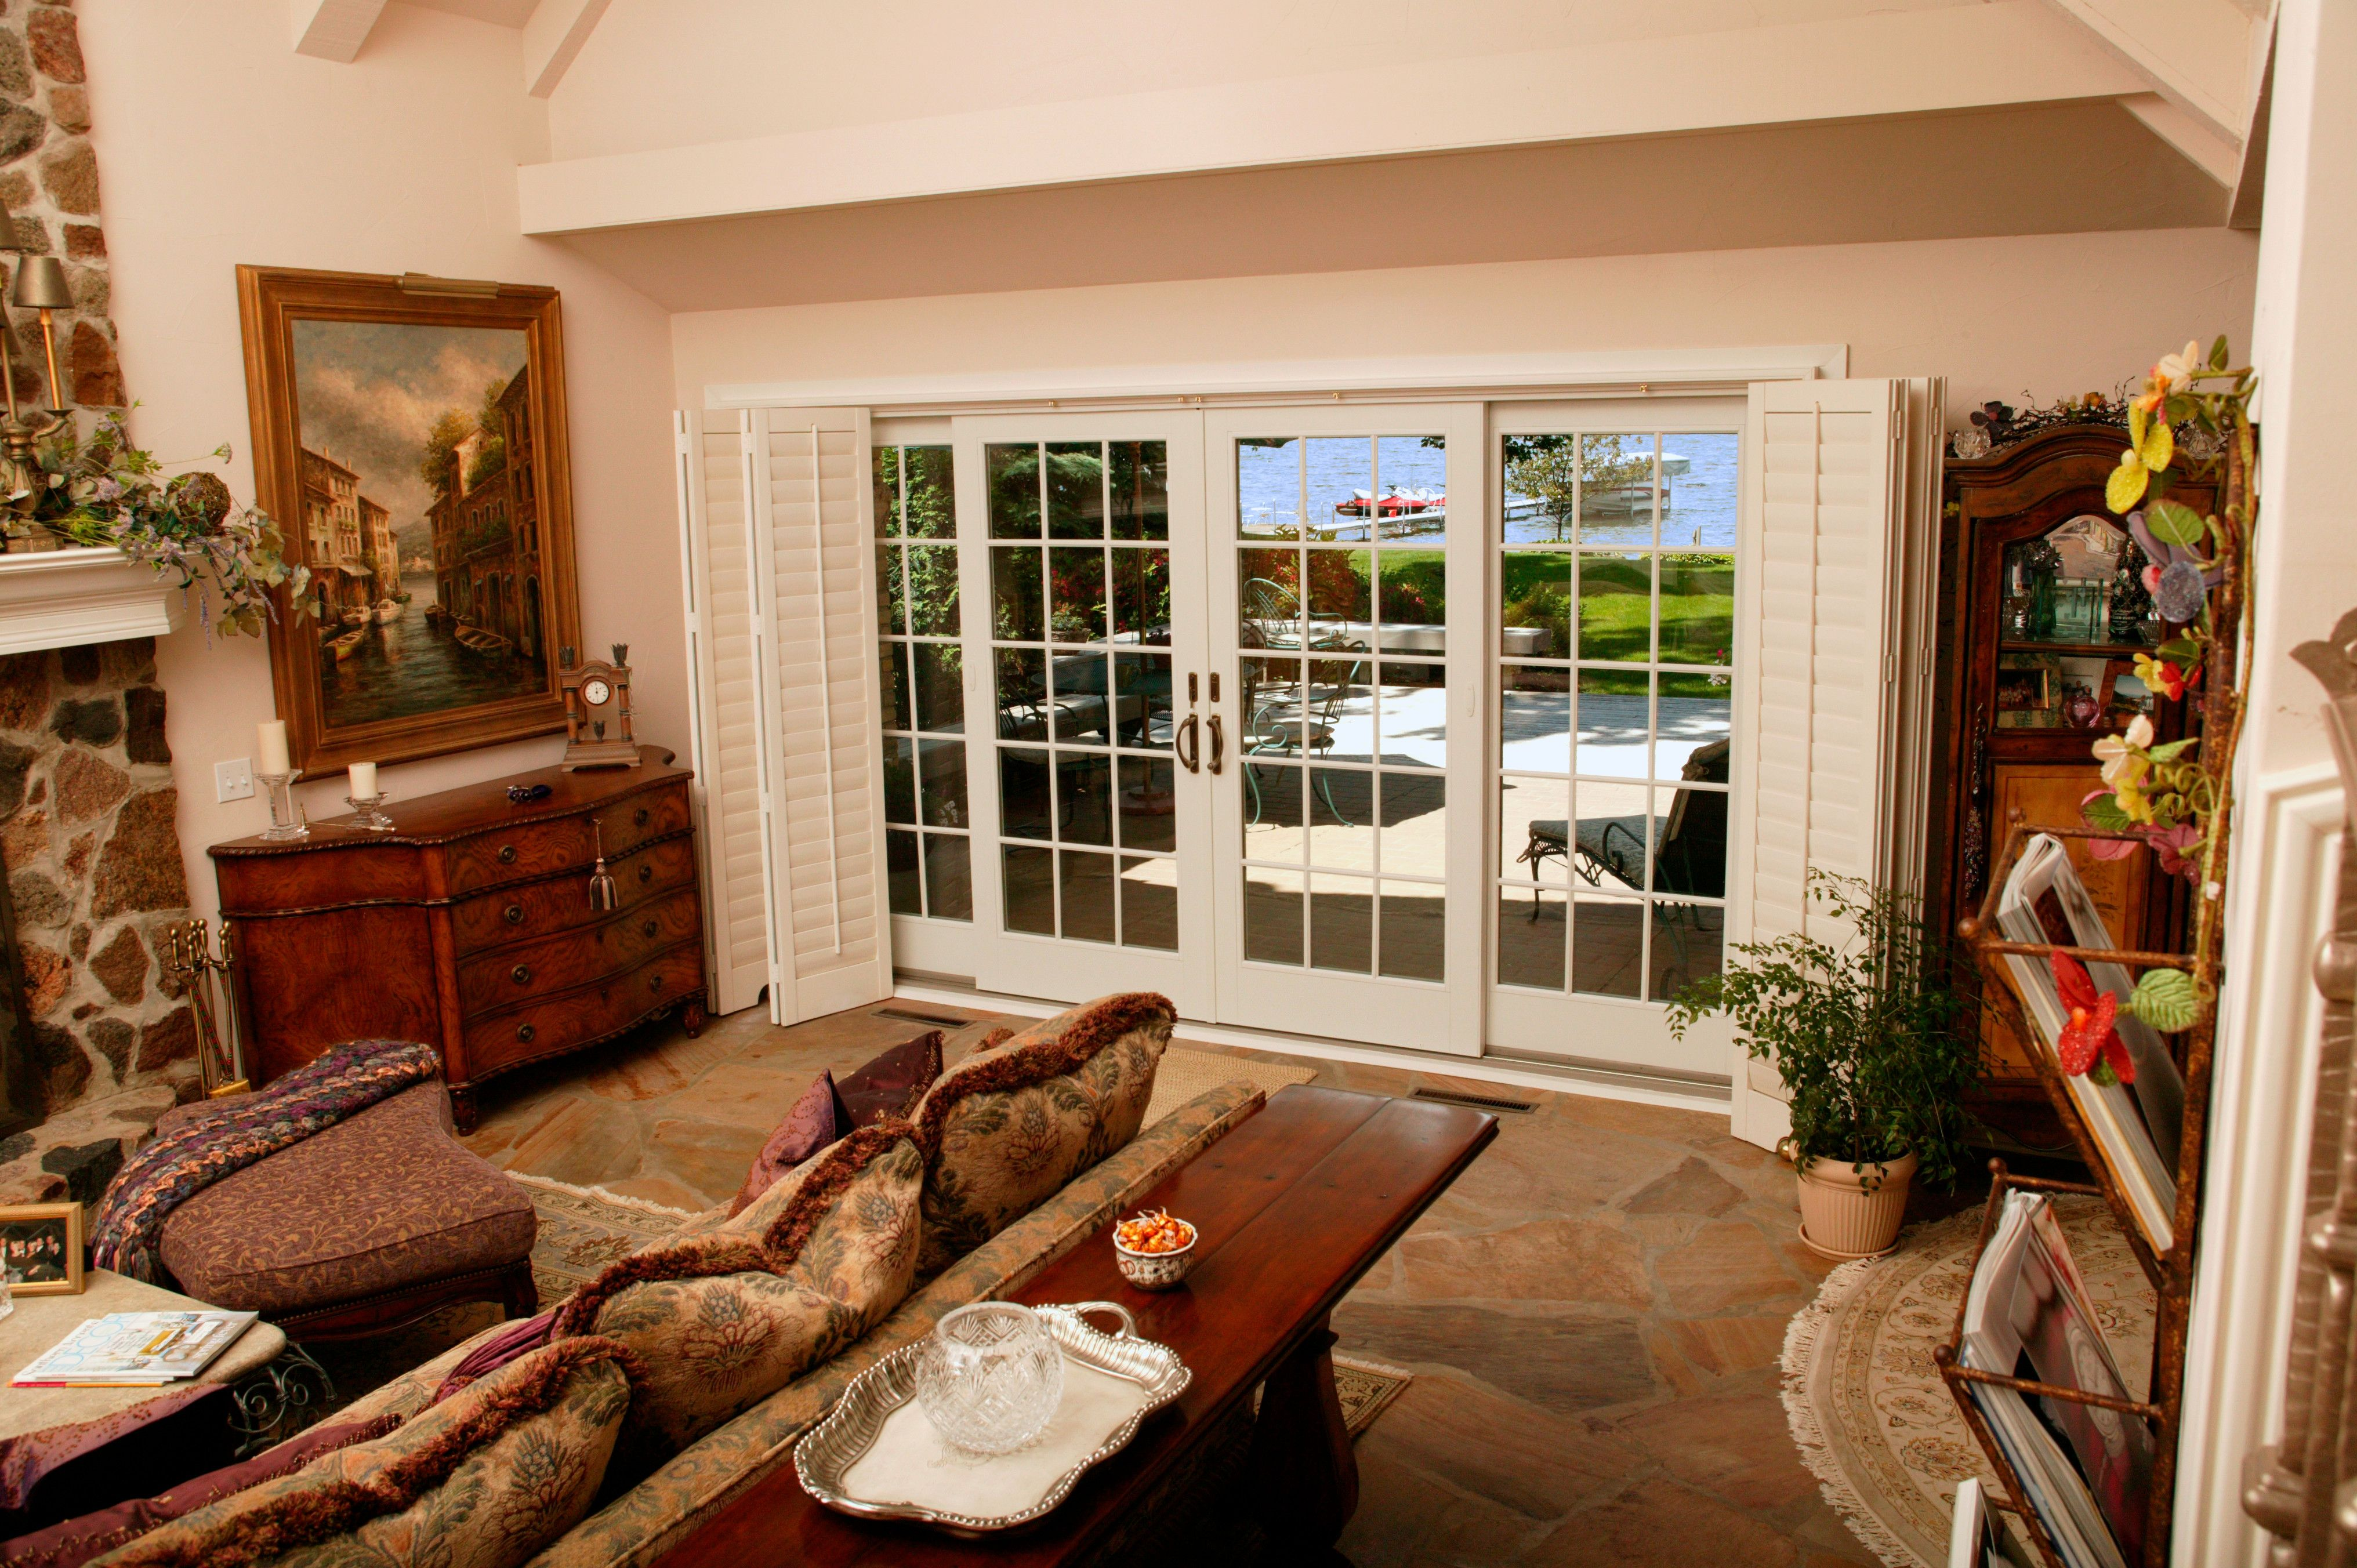 Interior View Of Frenchwood Gliding Patio Door That Opens From The